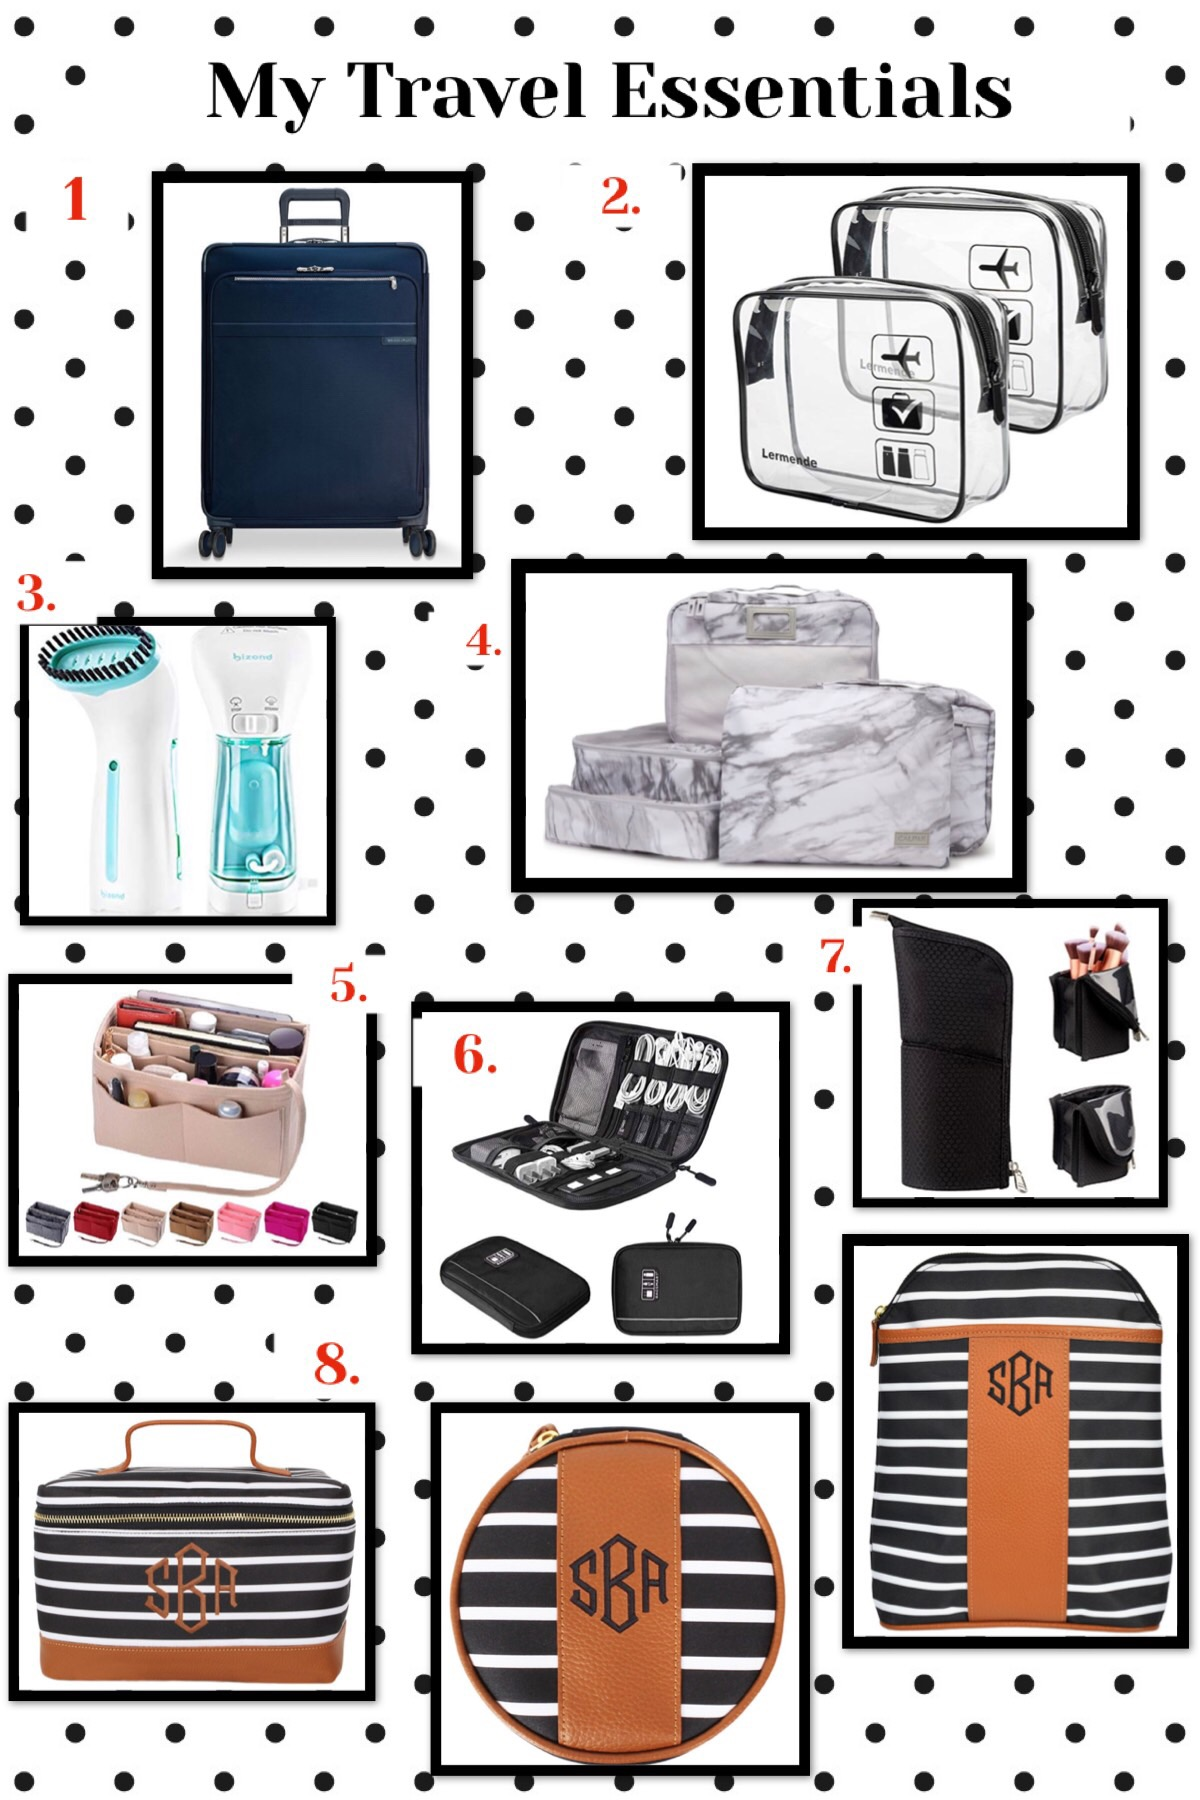 travel blogger, travel must haves, travel essentials, go to travel items, traveling, travel blog, traveling family, mom blogger